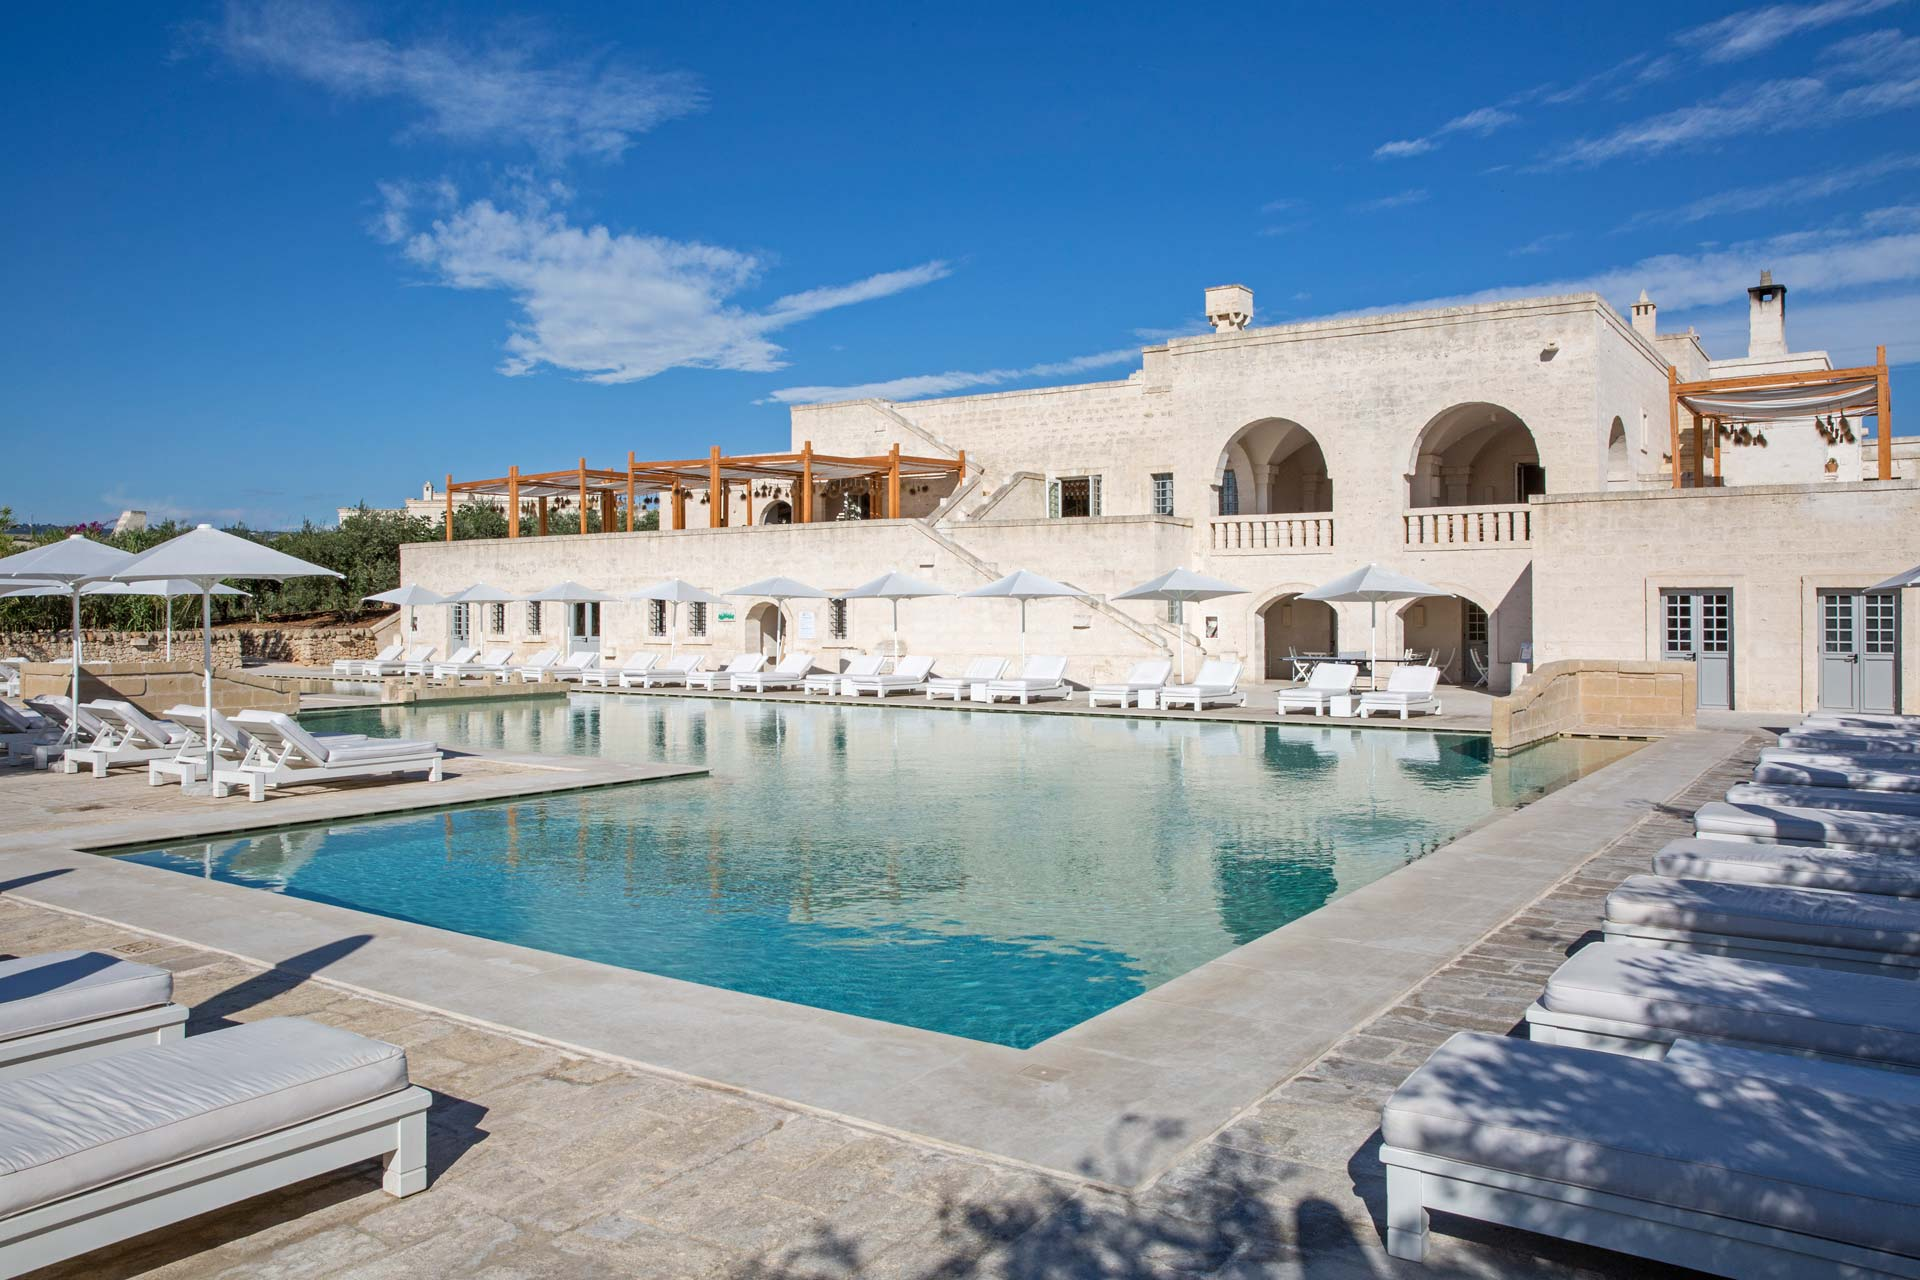 It's Borgo Egnazia – it's nowhere else